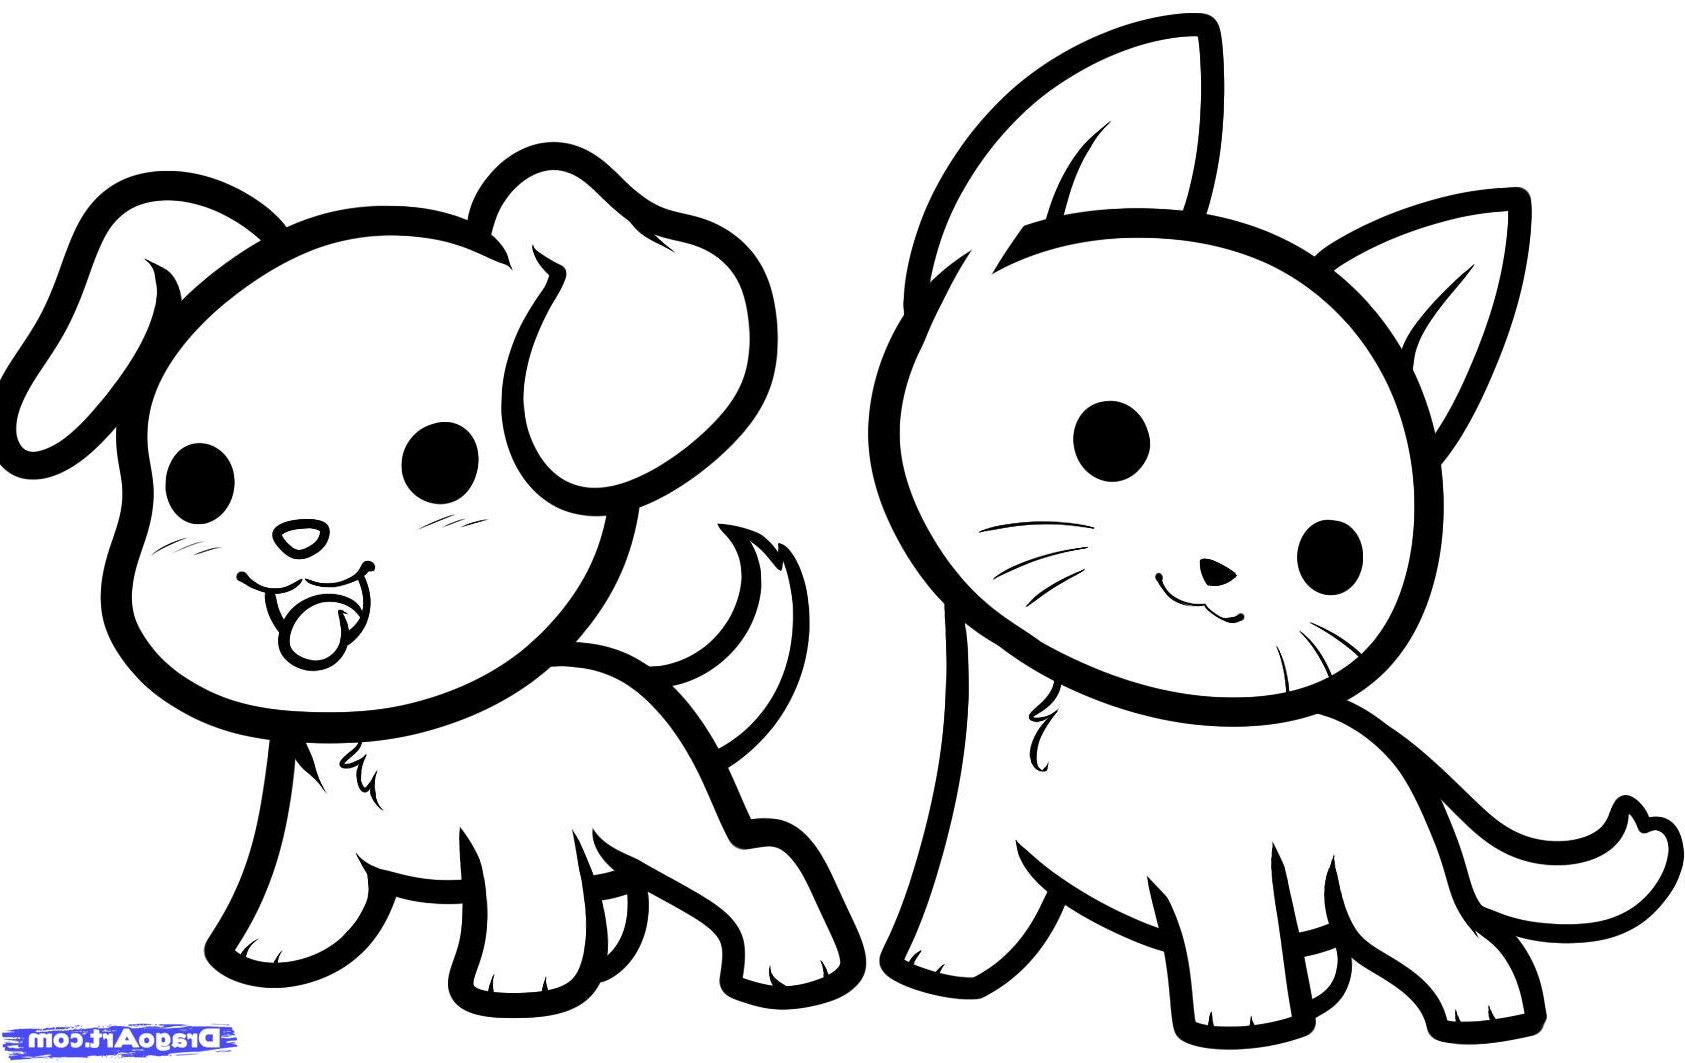 Coloring Pages Of Cute Babies Cartoon Drawings Of Animals Sea Animals Drawings Animal Coloring Pages